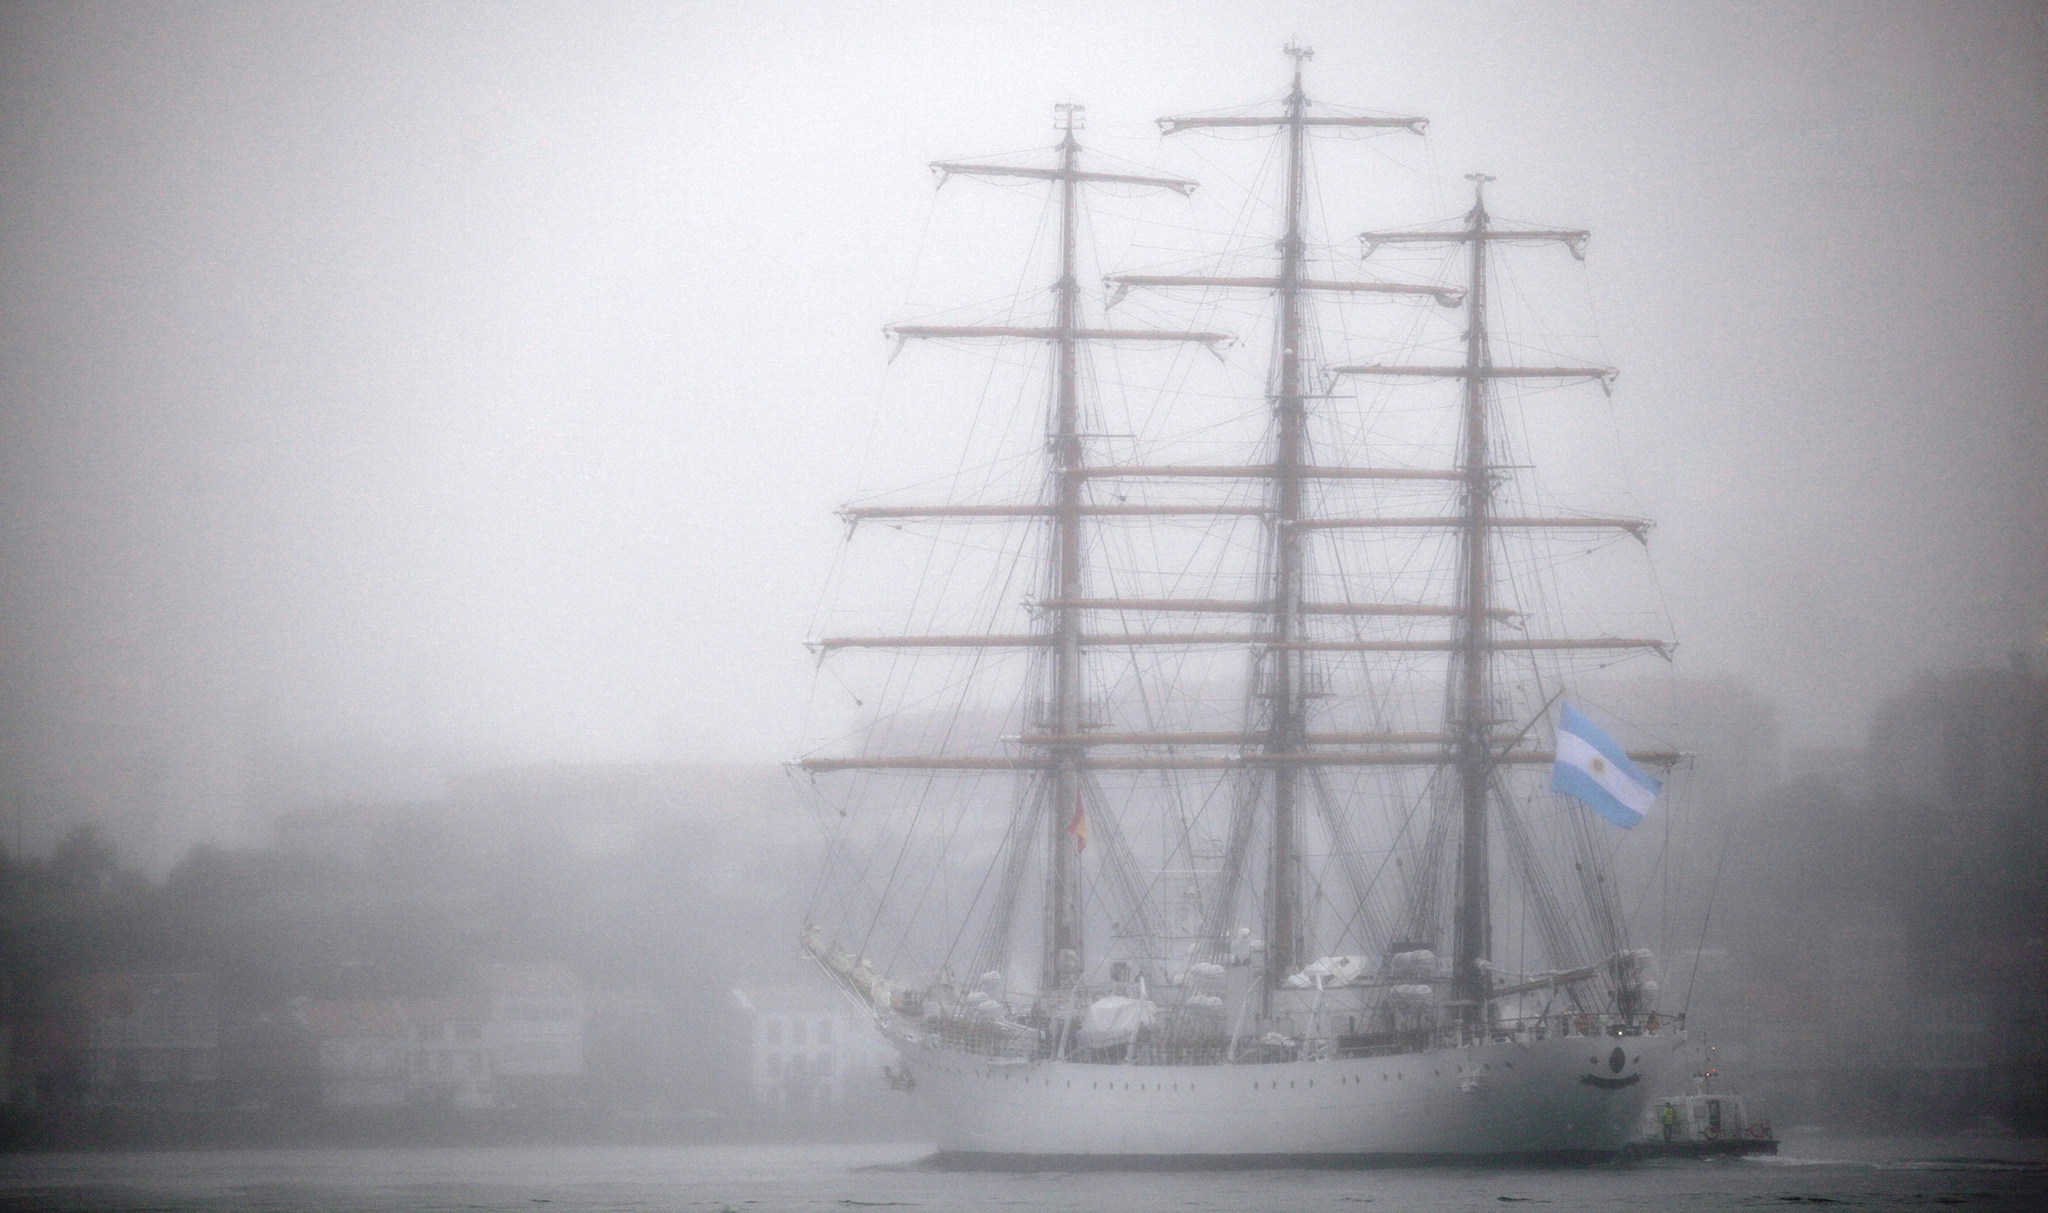 Argentinian Navy's training ship arrives in Spanish Navy port in Ferrol, A Coruna, northwestern Spain, 04 August 2016. The ship is on its 45th teaching trip coinciding with the 200th anniversary of the Declaration of Independence of Argentina.